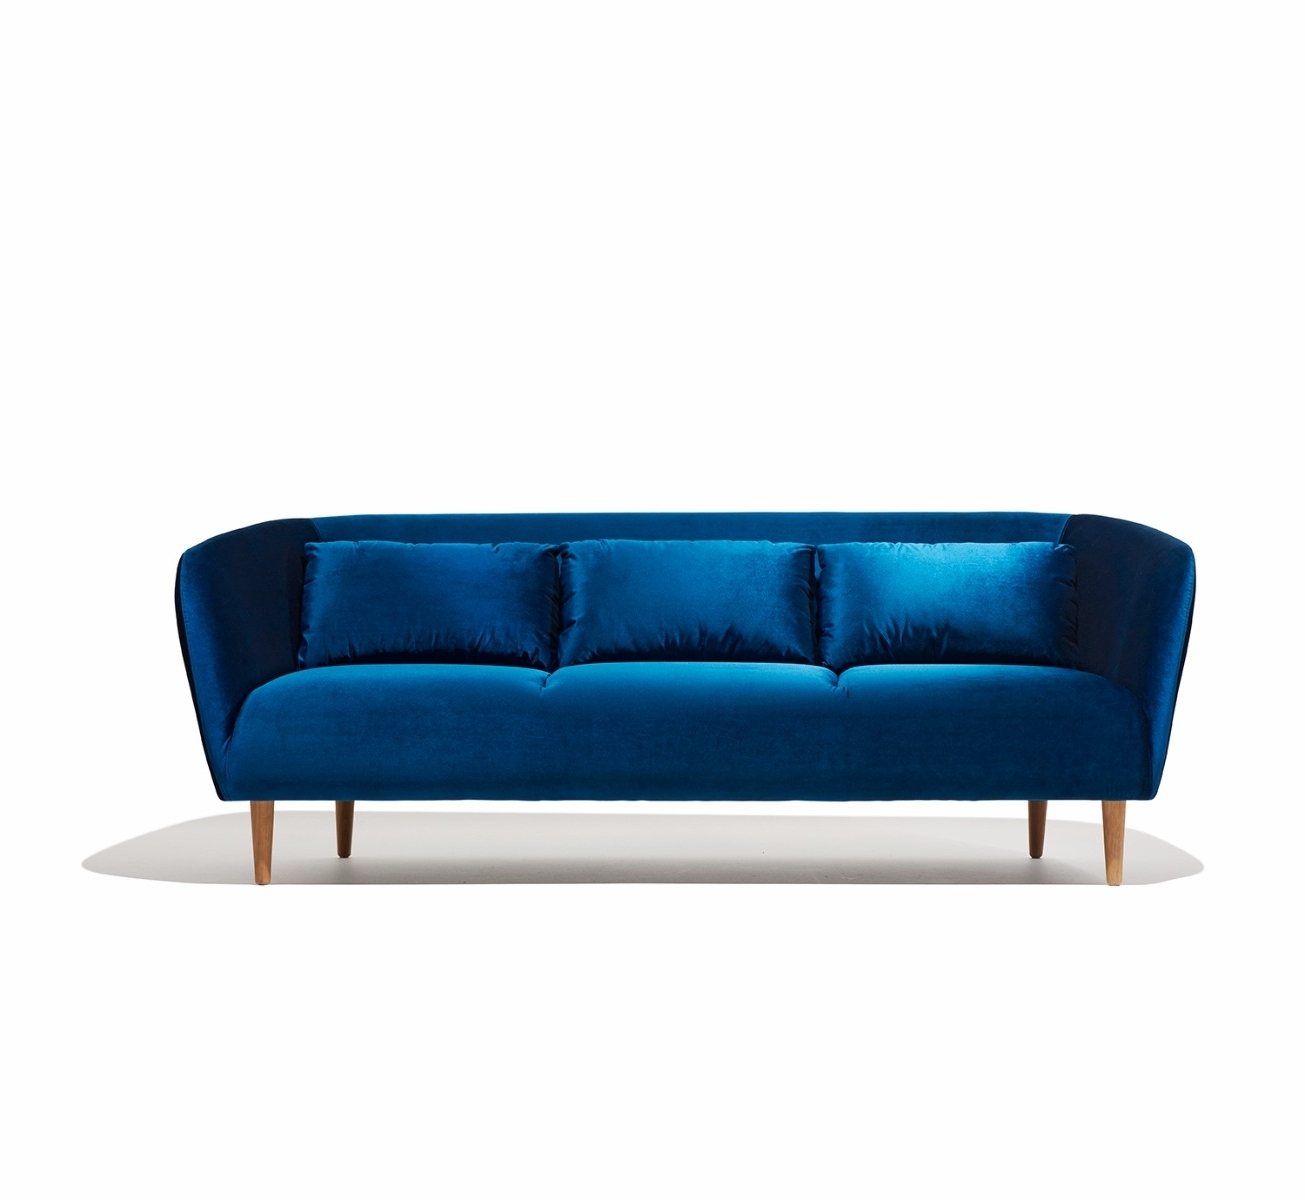 Well Liked Turquoise Sofas Intended For Modern Sofa Sets: Industrial, Leather, Mid Century, Sectional Sofas (View 10 of 15)